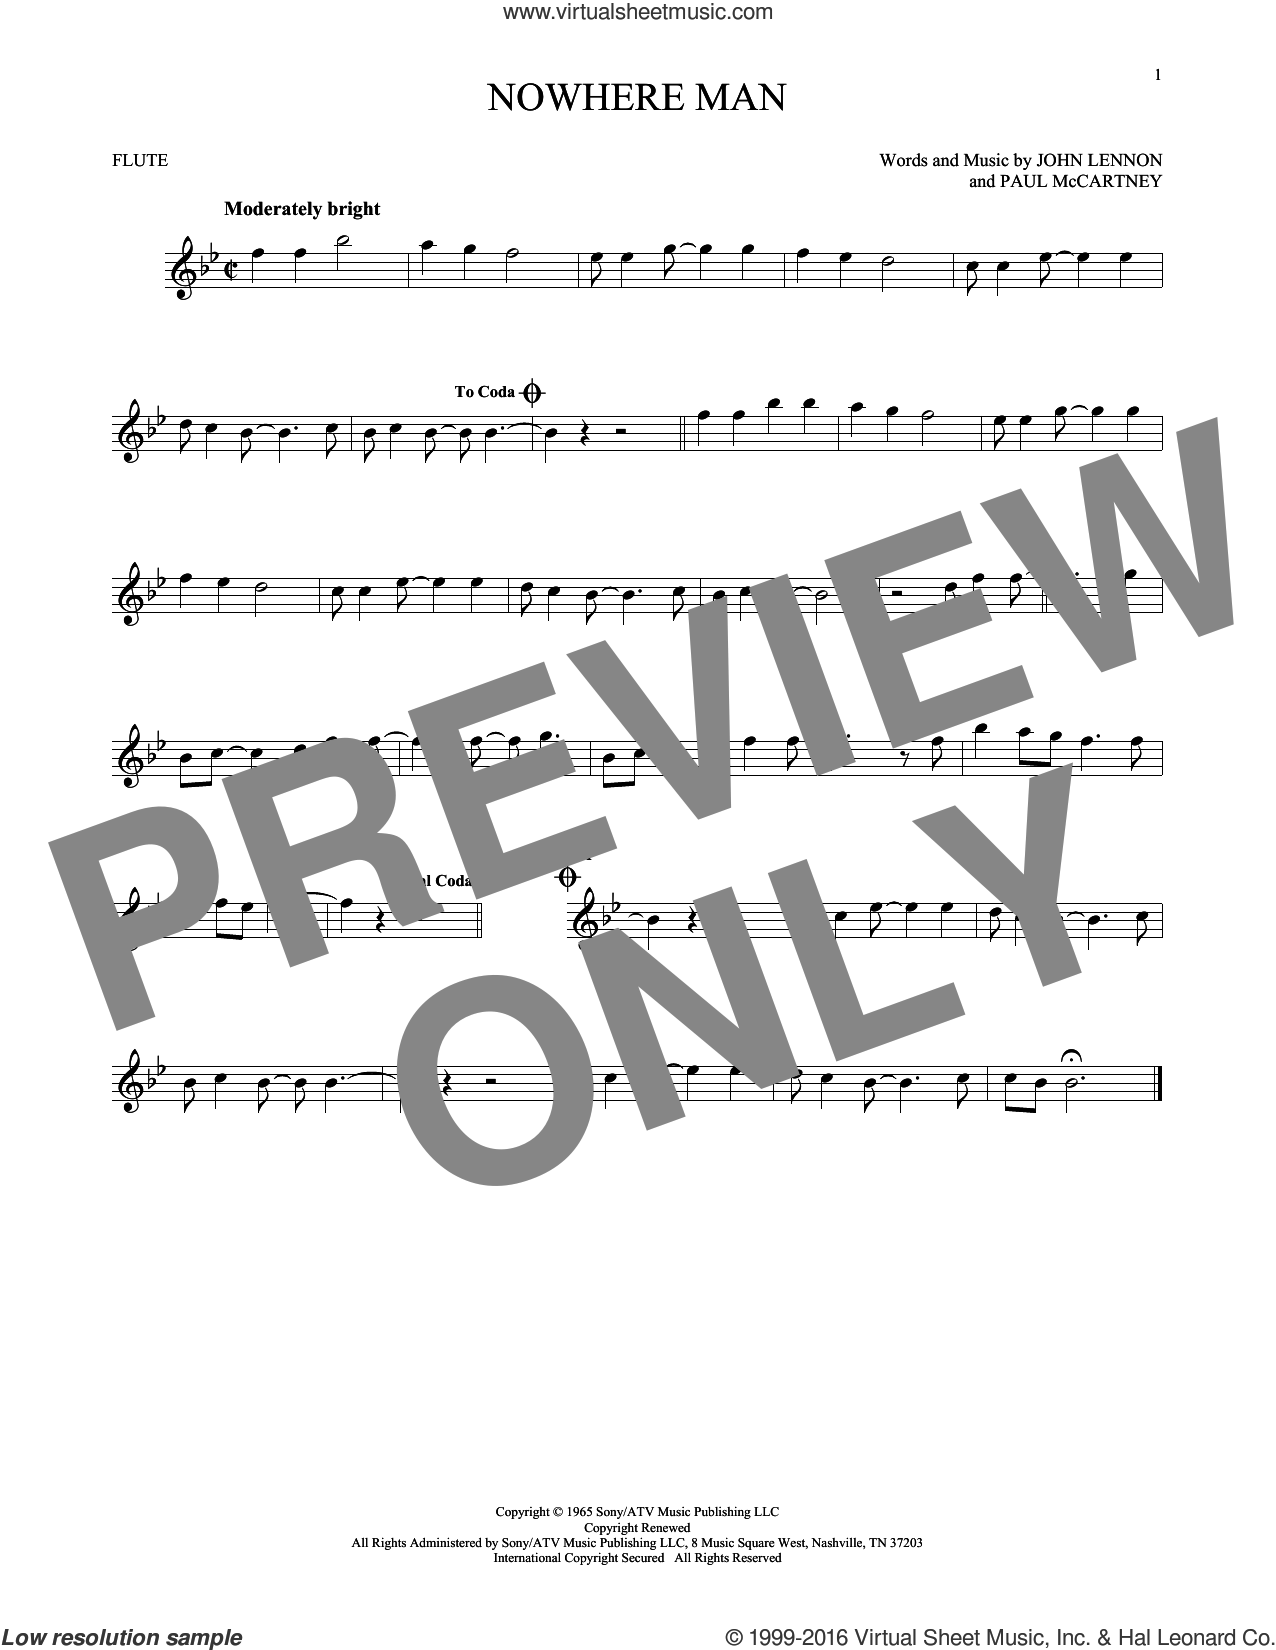 Nowhere Man sheet music for flute solo by The Beatles, John Lennon and Paul McCartney, intermediate skill level